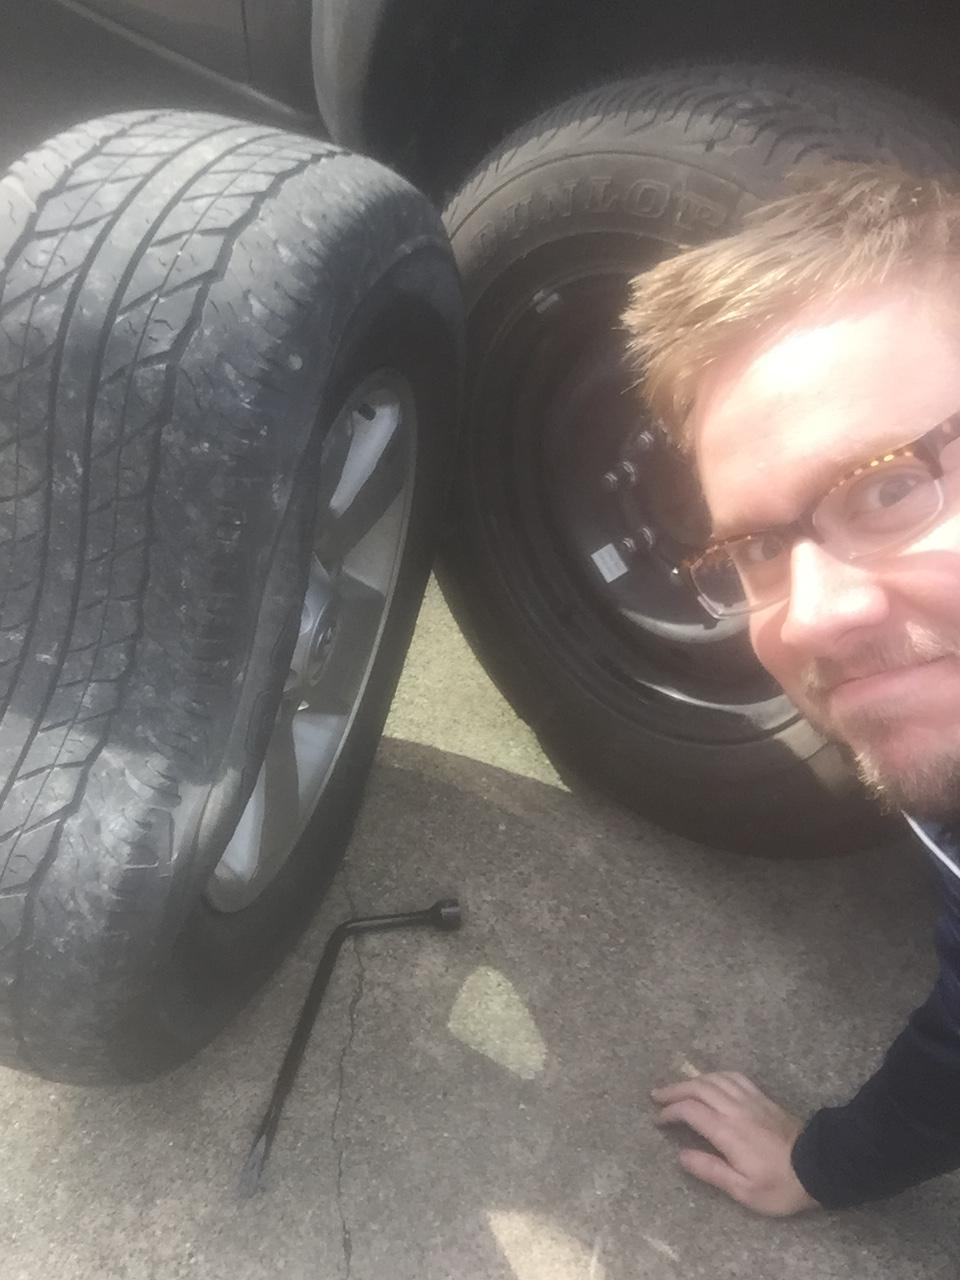 Guy Gets Flat Tire, Takes Opportunity To Troll The Sh*t Out Of His Mates 5